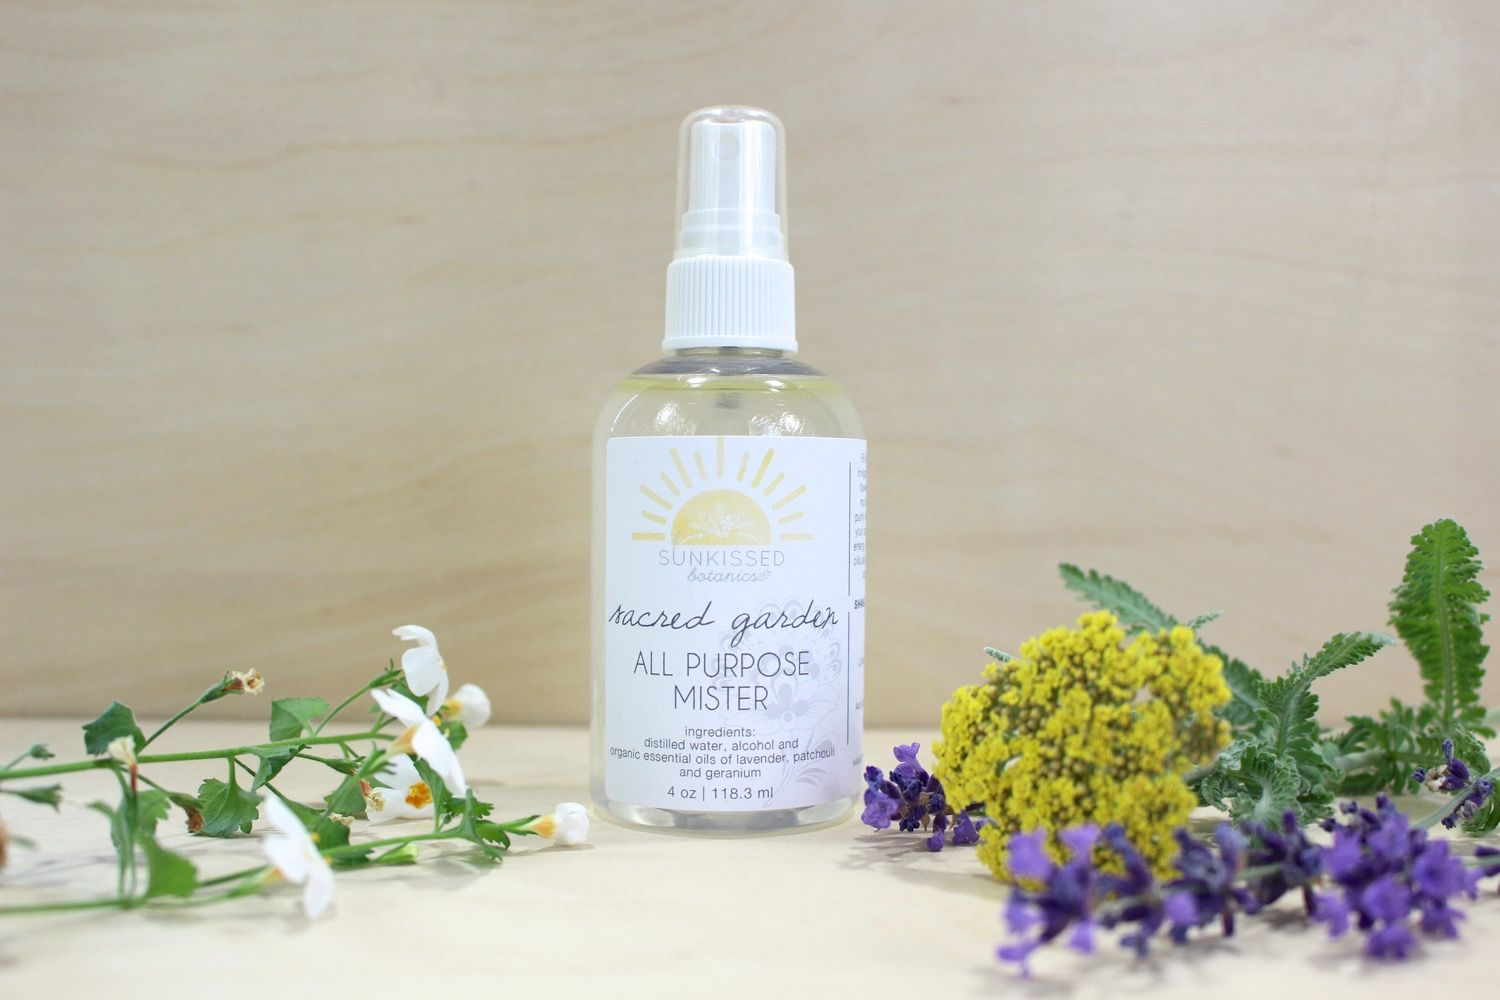 Sacred Garden All Purpose Mister Natural Hand Sanitizer